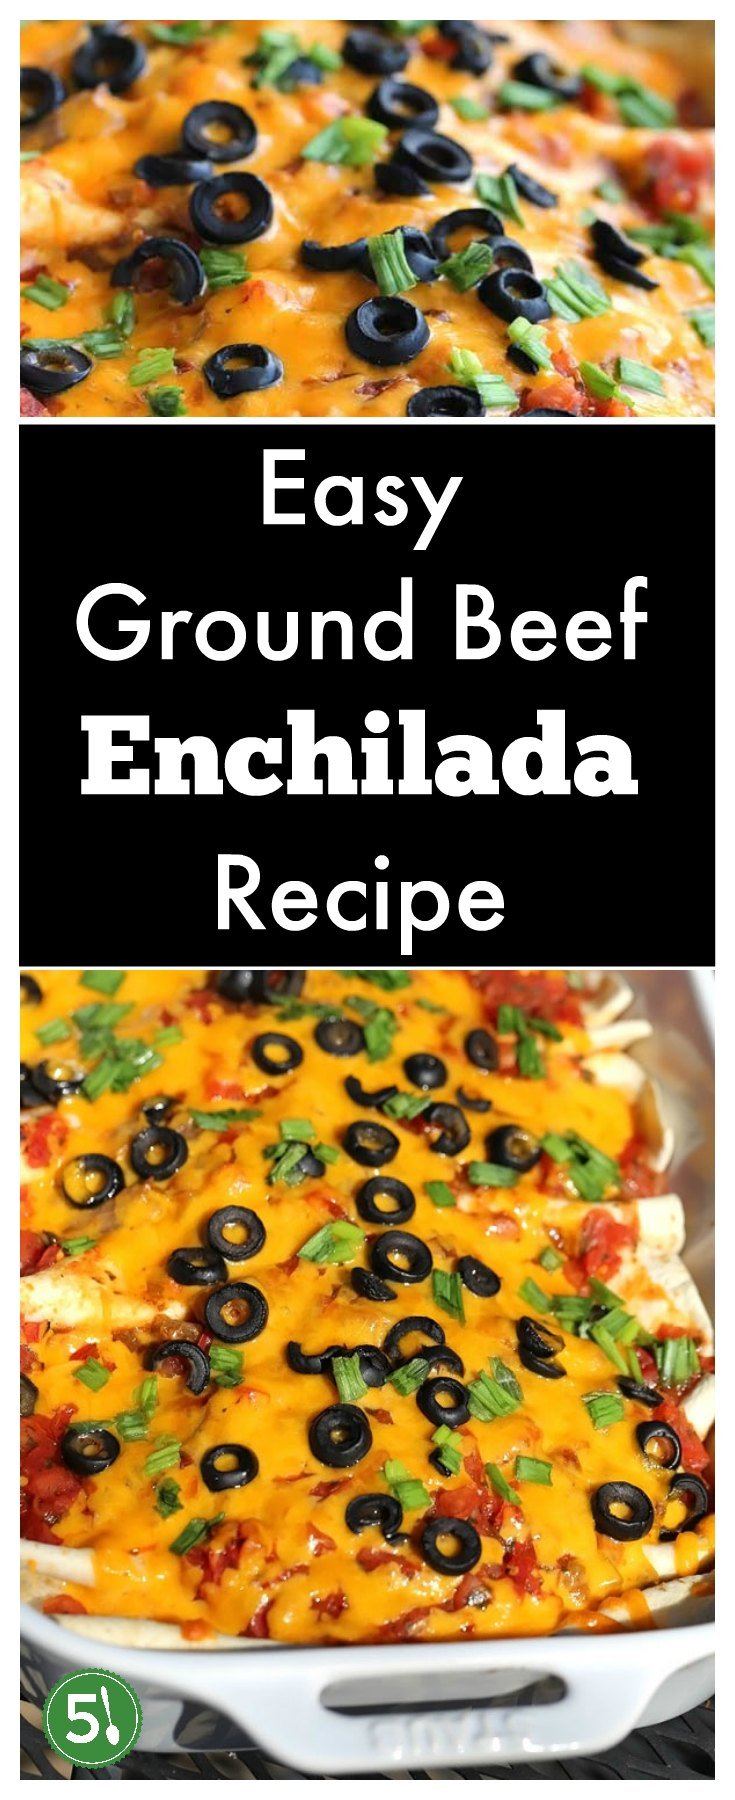 Easy ground beef enchilada recipe with red sauce that is so simple to throw together for a healthy weeknight meal.  So Delicious.